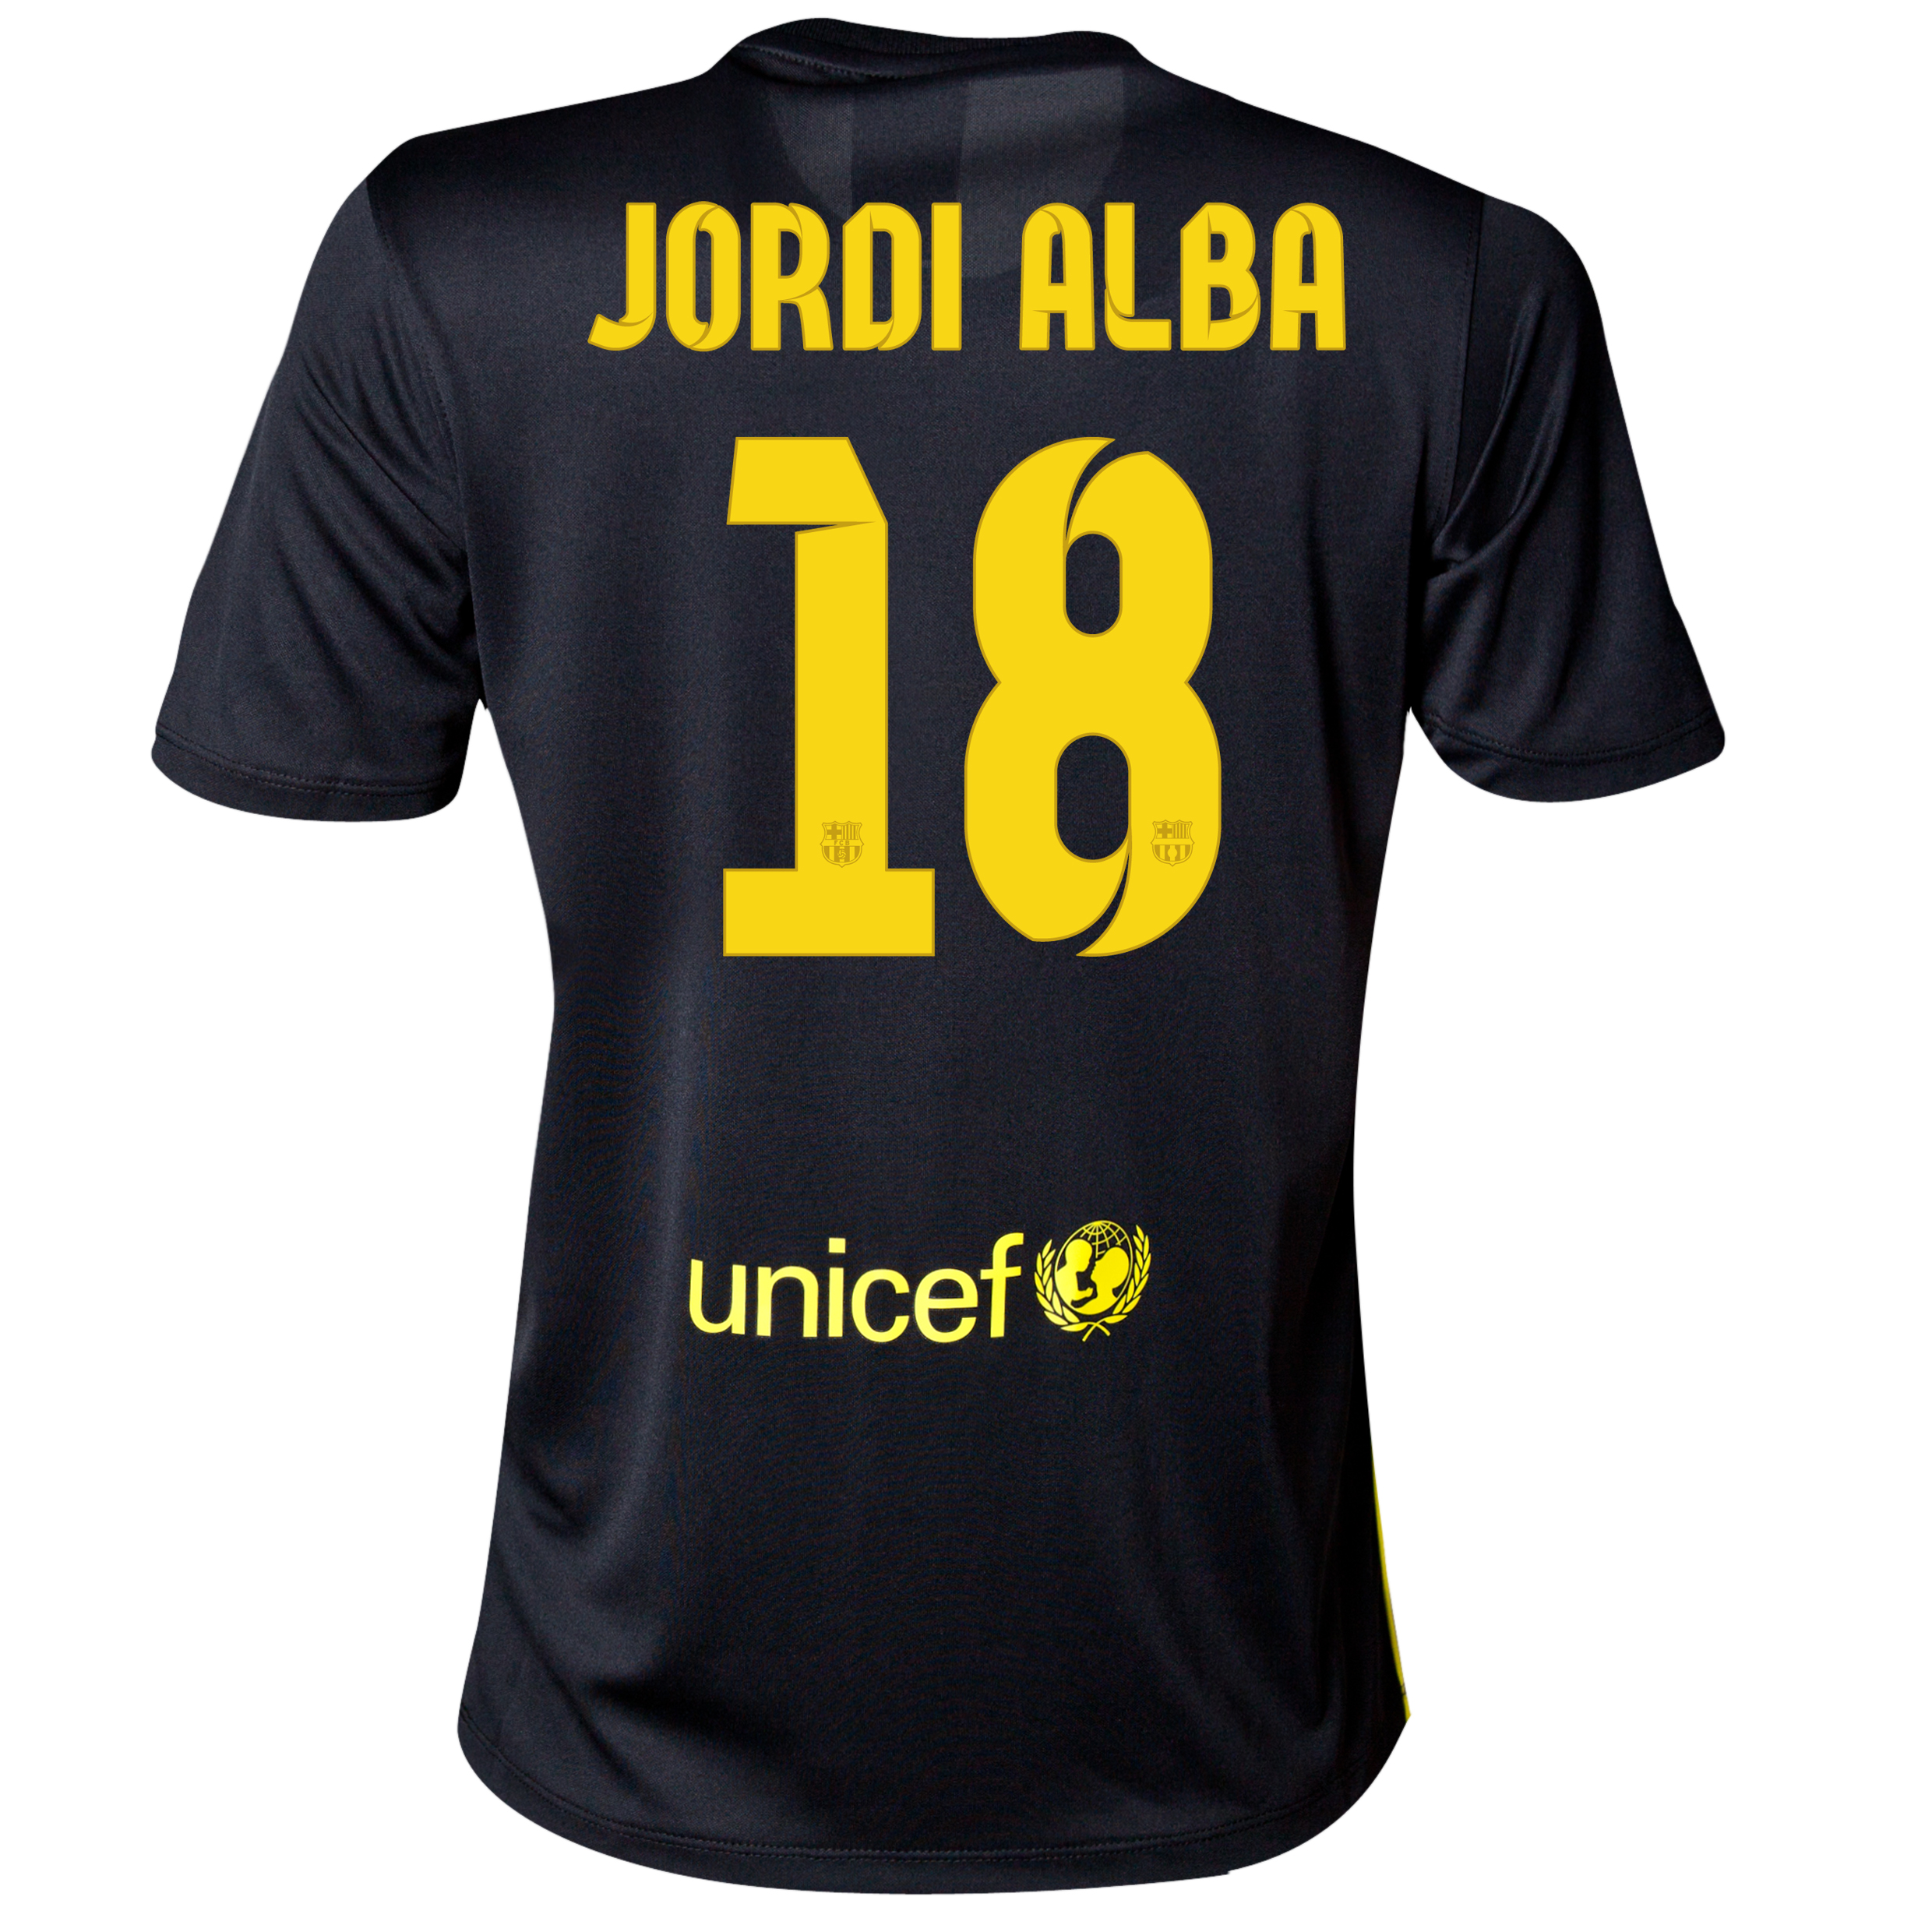 Barcelona Third Shirt 2013/14 - Womens with Jordi Alba 18 printing